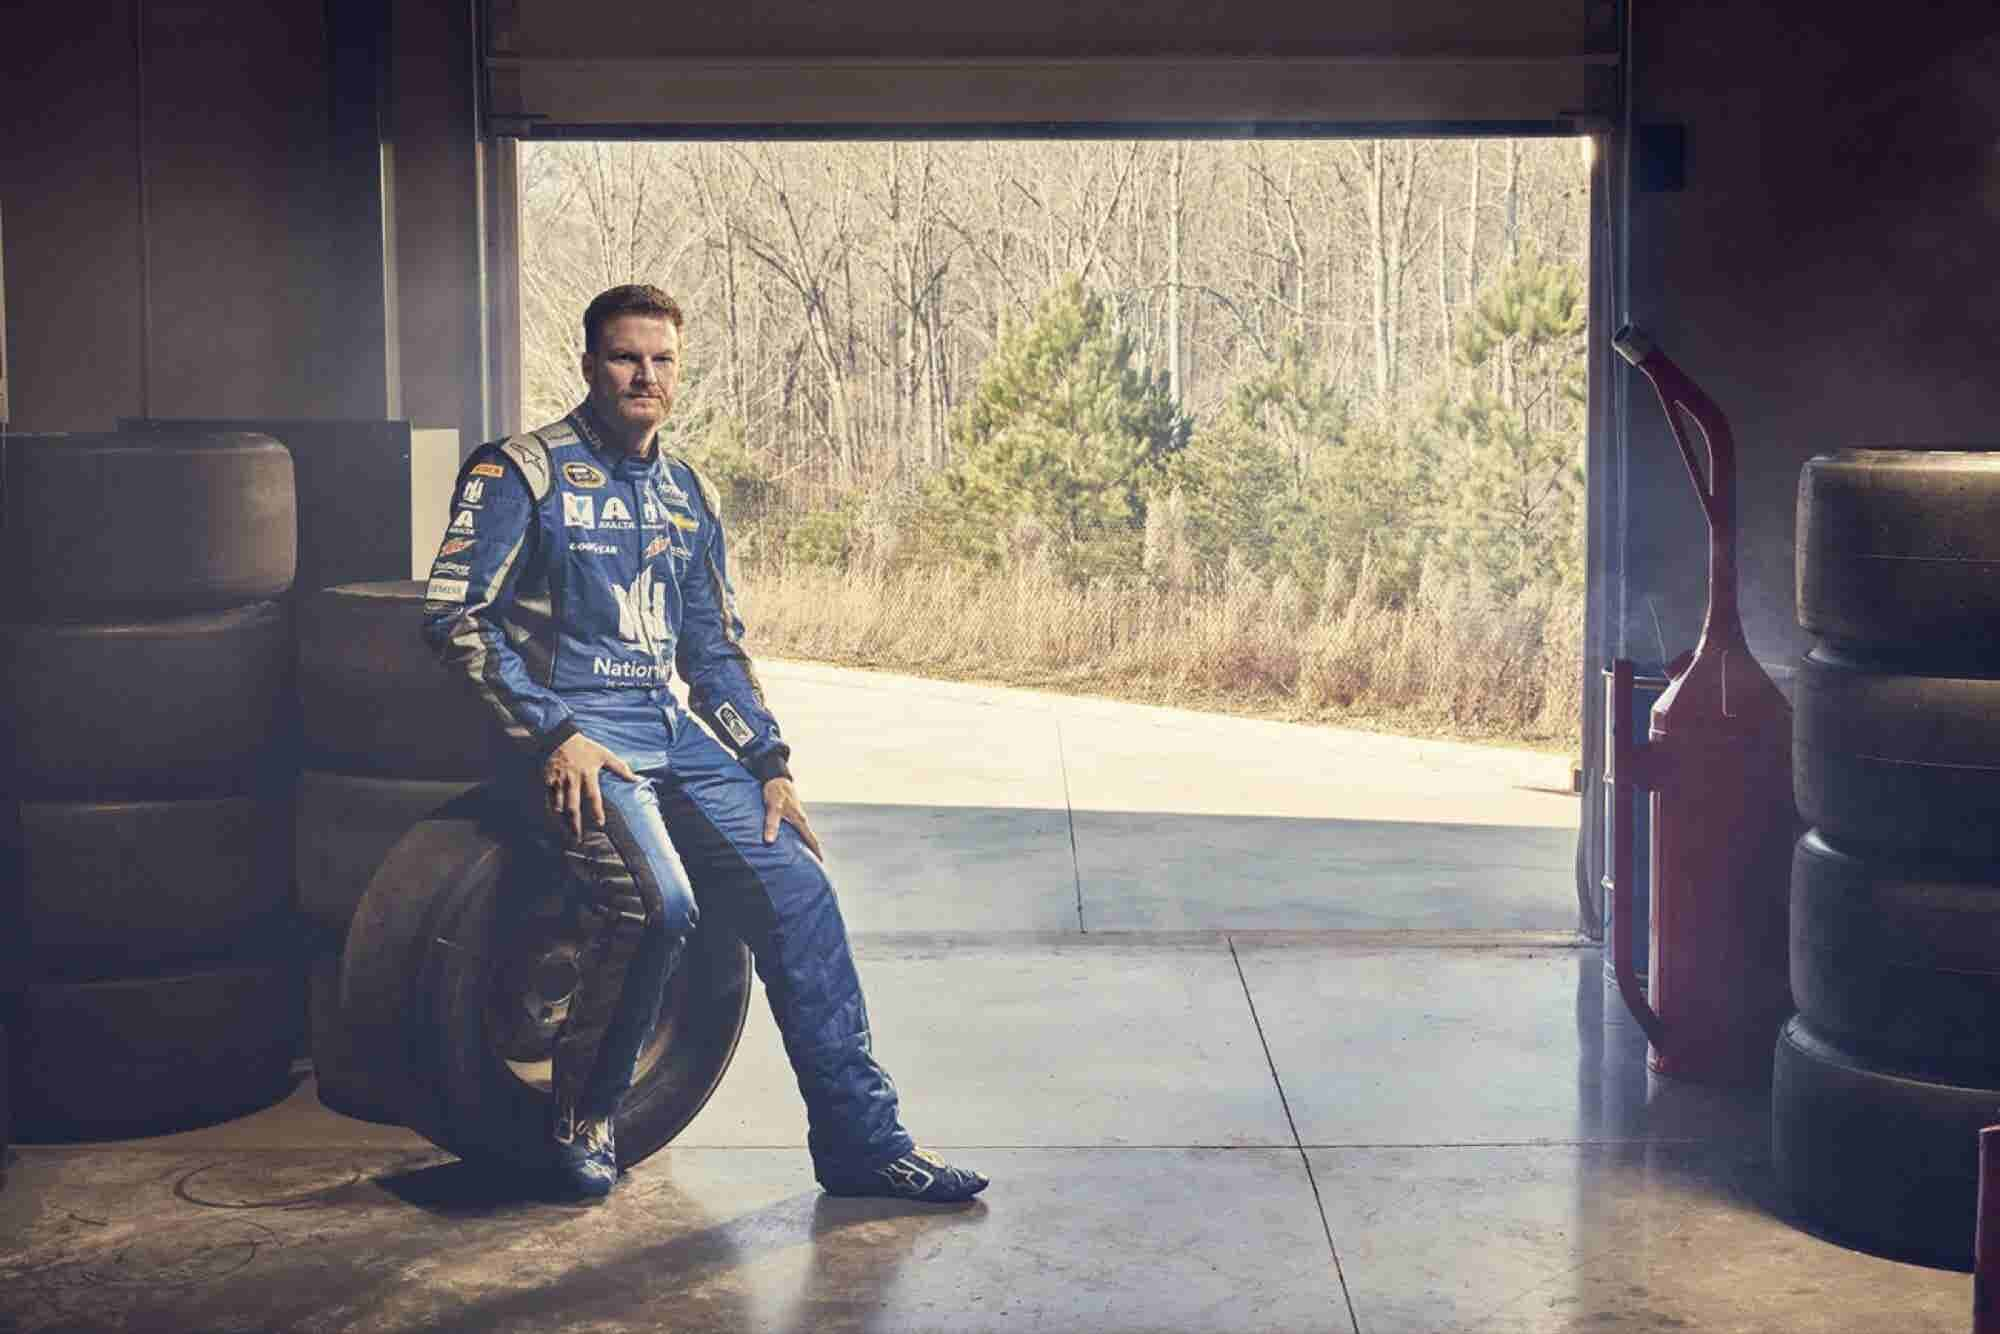 7 Speedy Business Tips From NASCAR Driver Dale Earnhardt Jr.